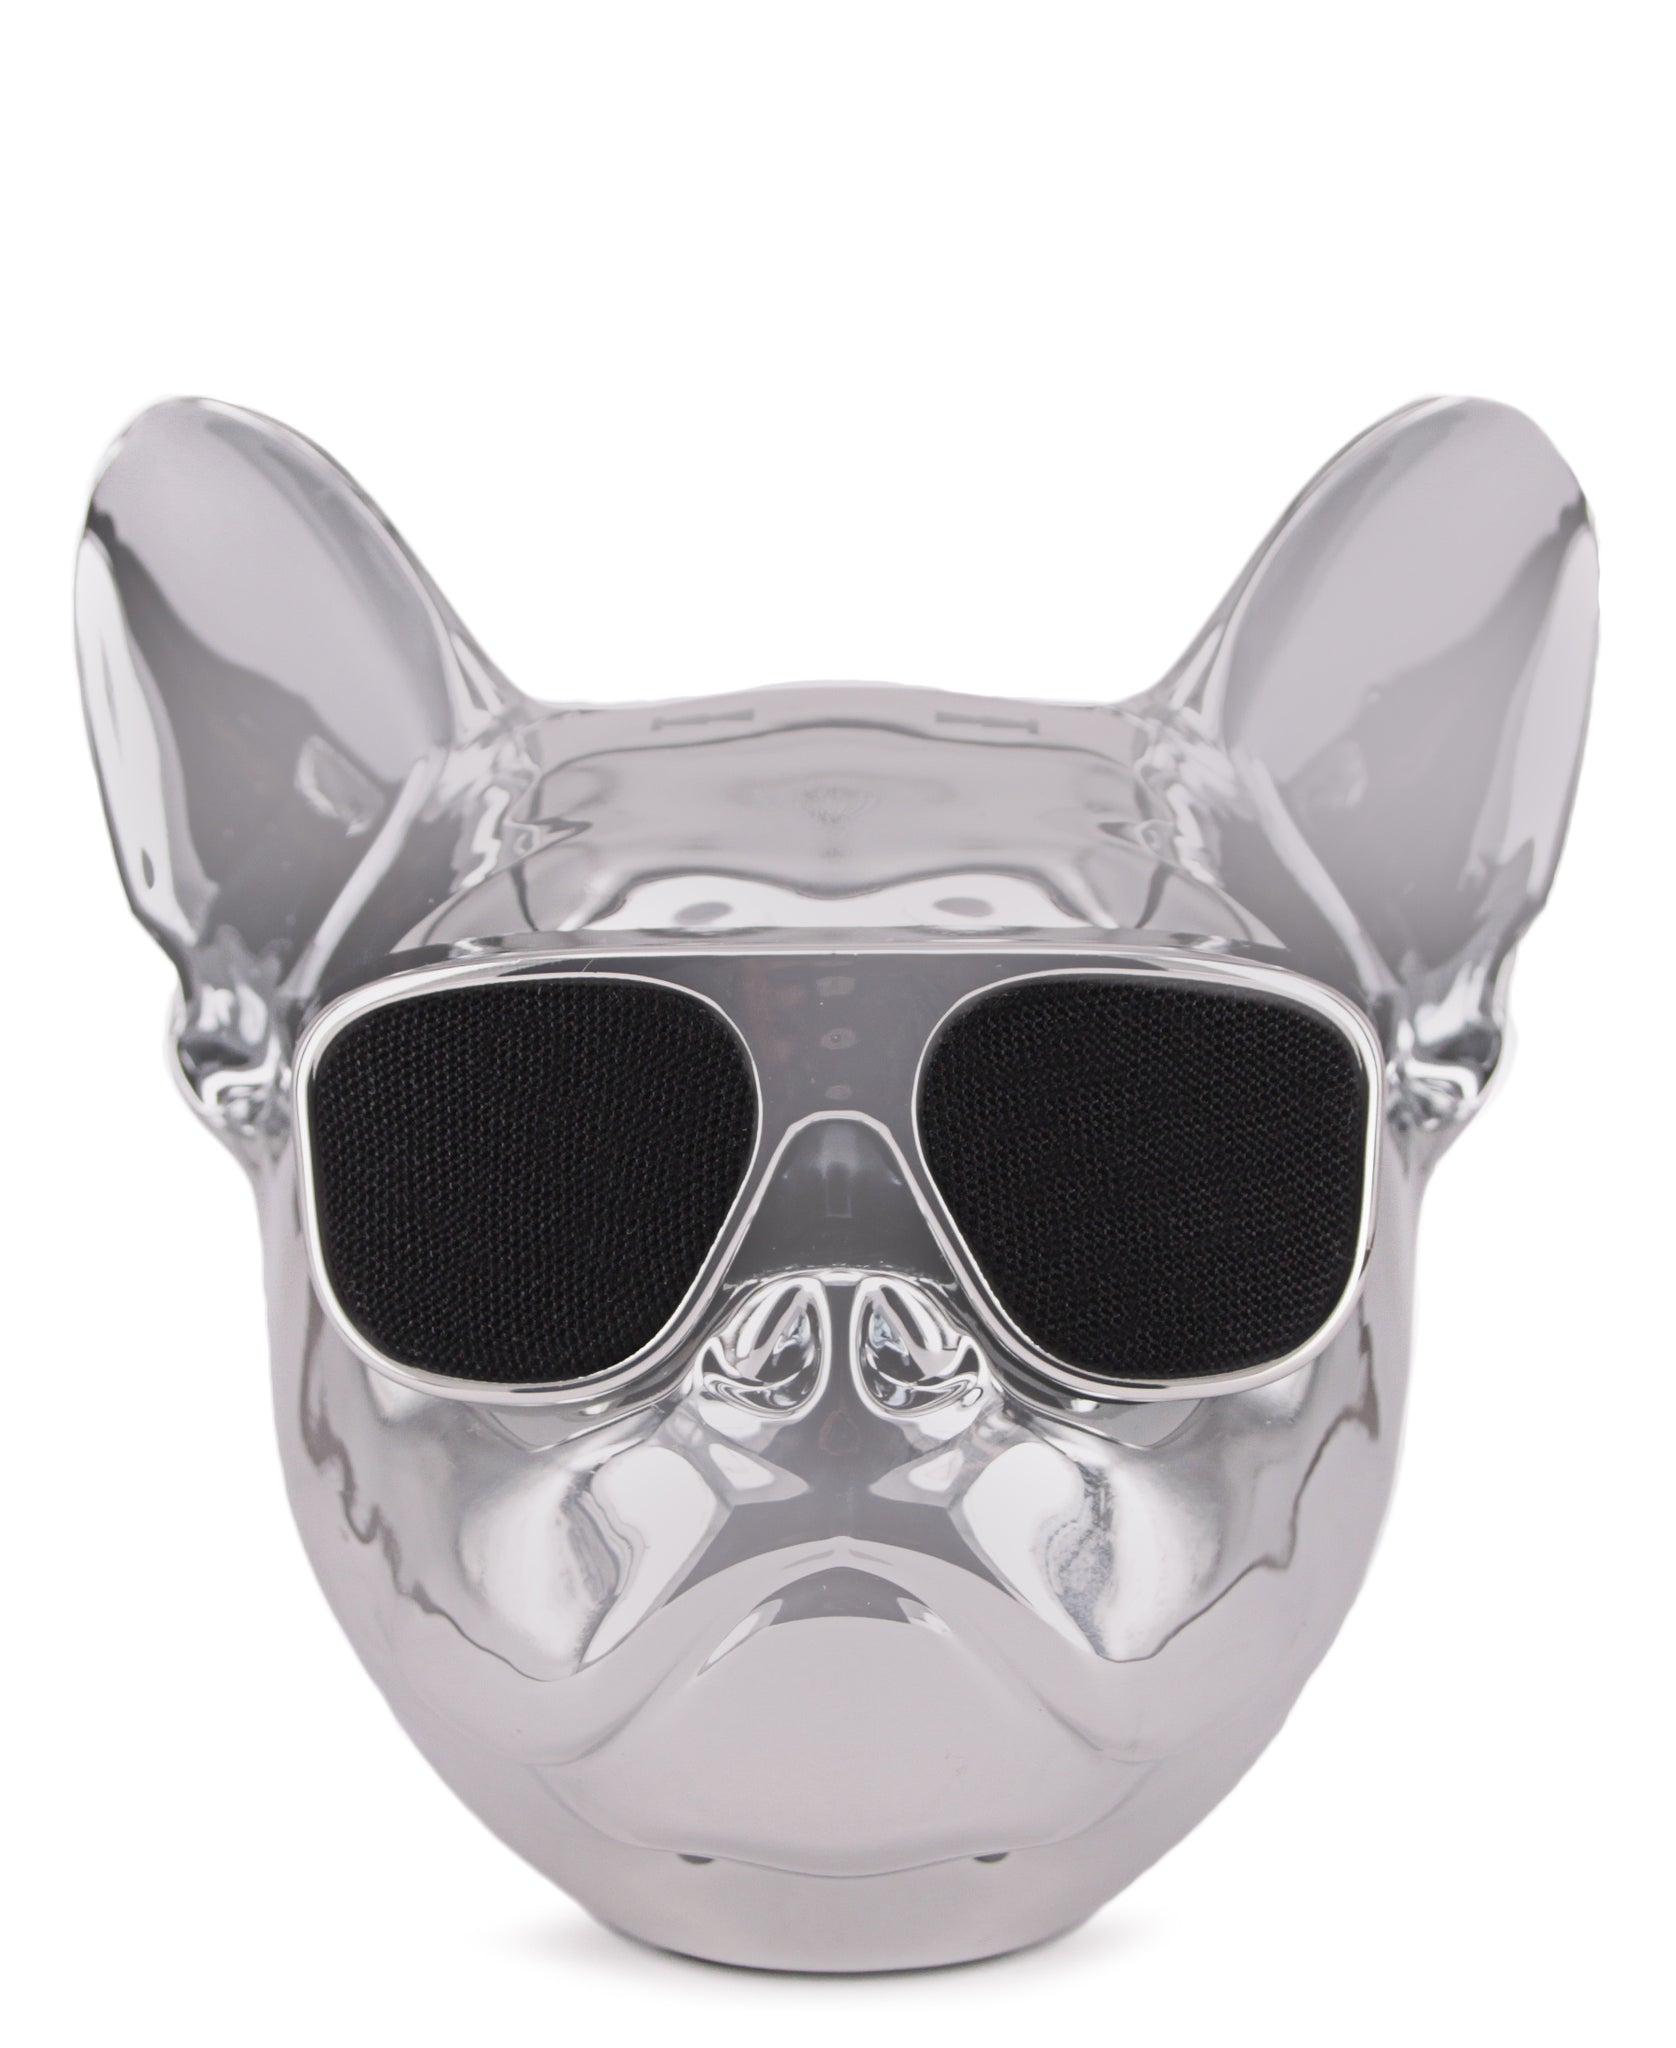 Dog Head Bluetooth Speaker - Silver